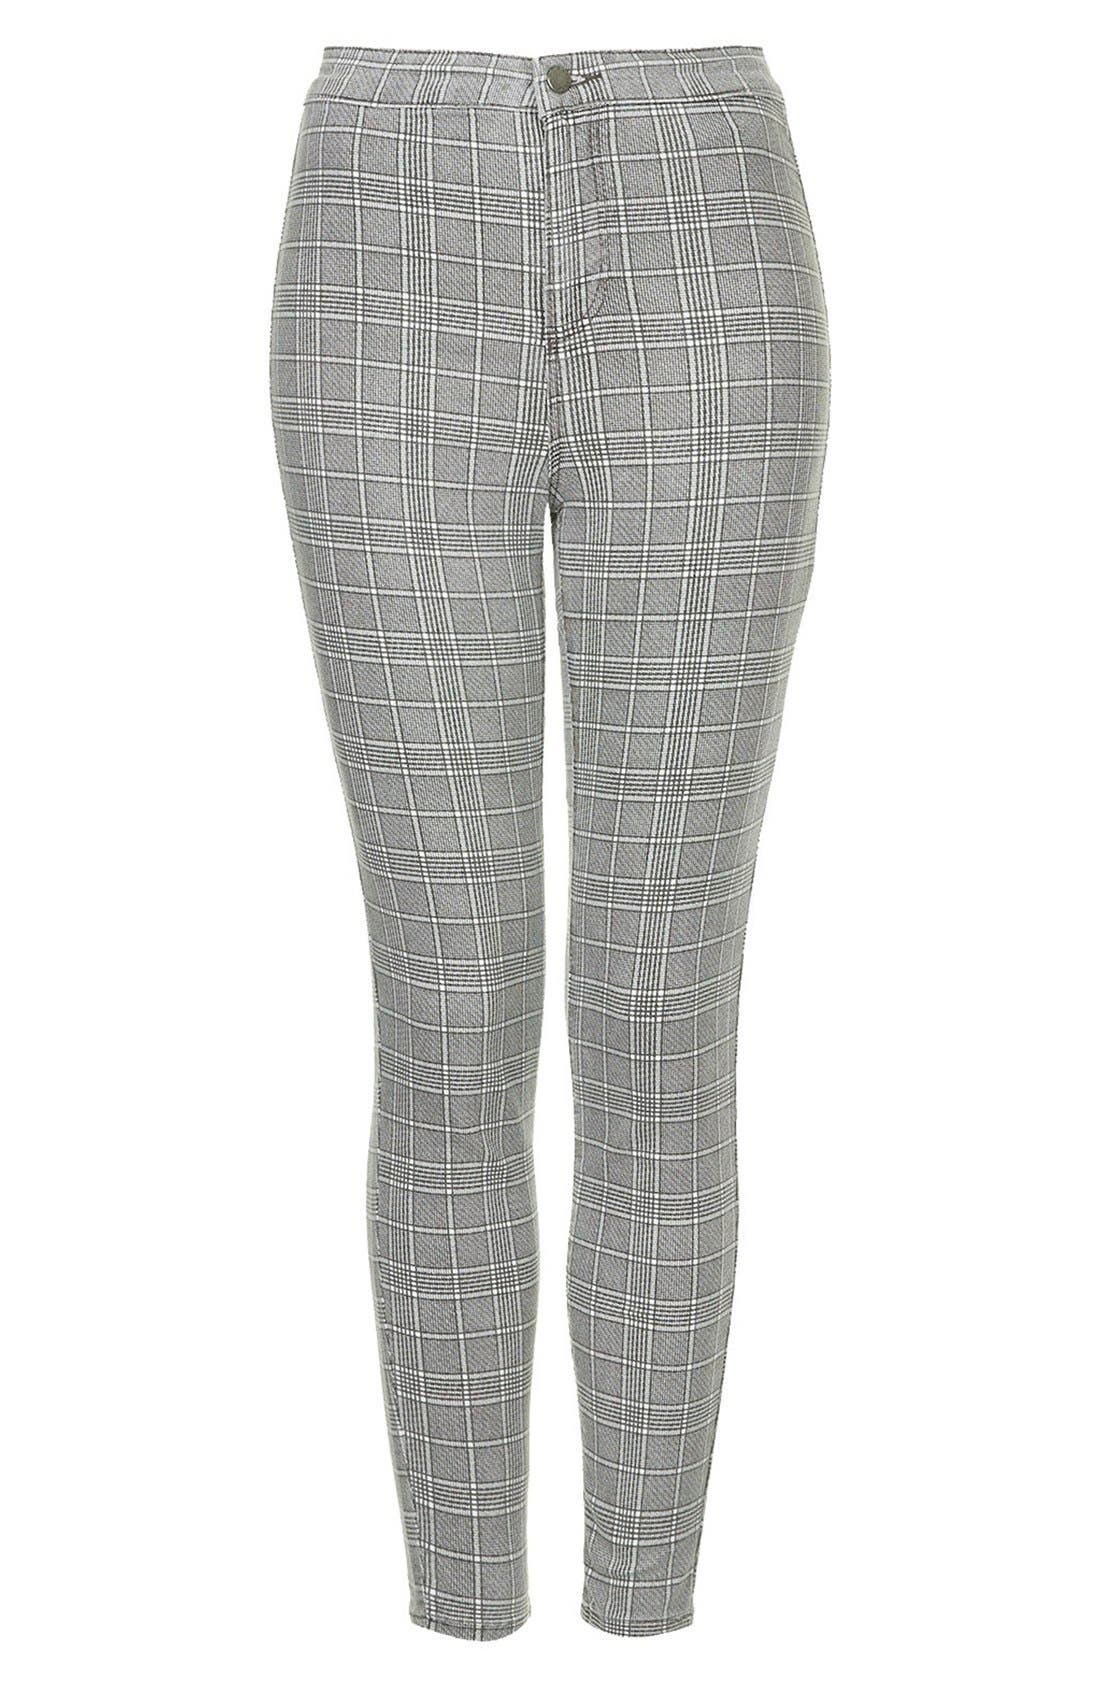 Alternate Image 3  - Topshop Moto 'Joni' Prince of Wales Plaid High Rise Skinny Jeans (Regular & Short)